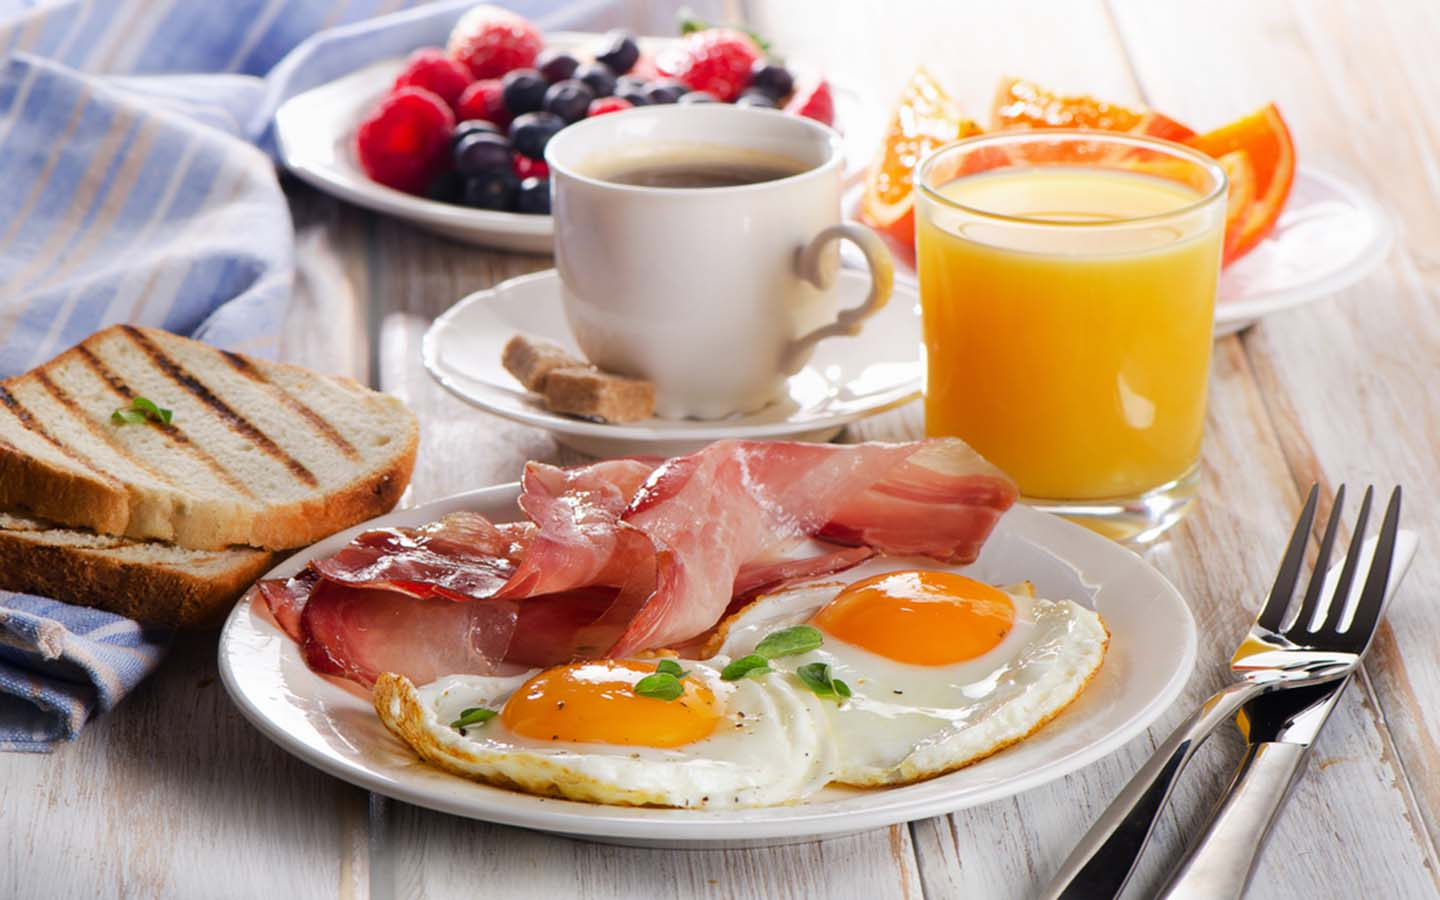 Coffee, juice, egg and toast along with other classic breakfast options